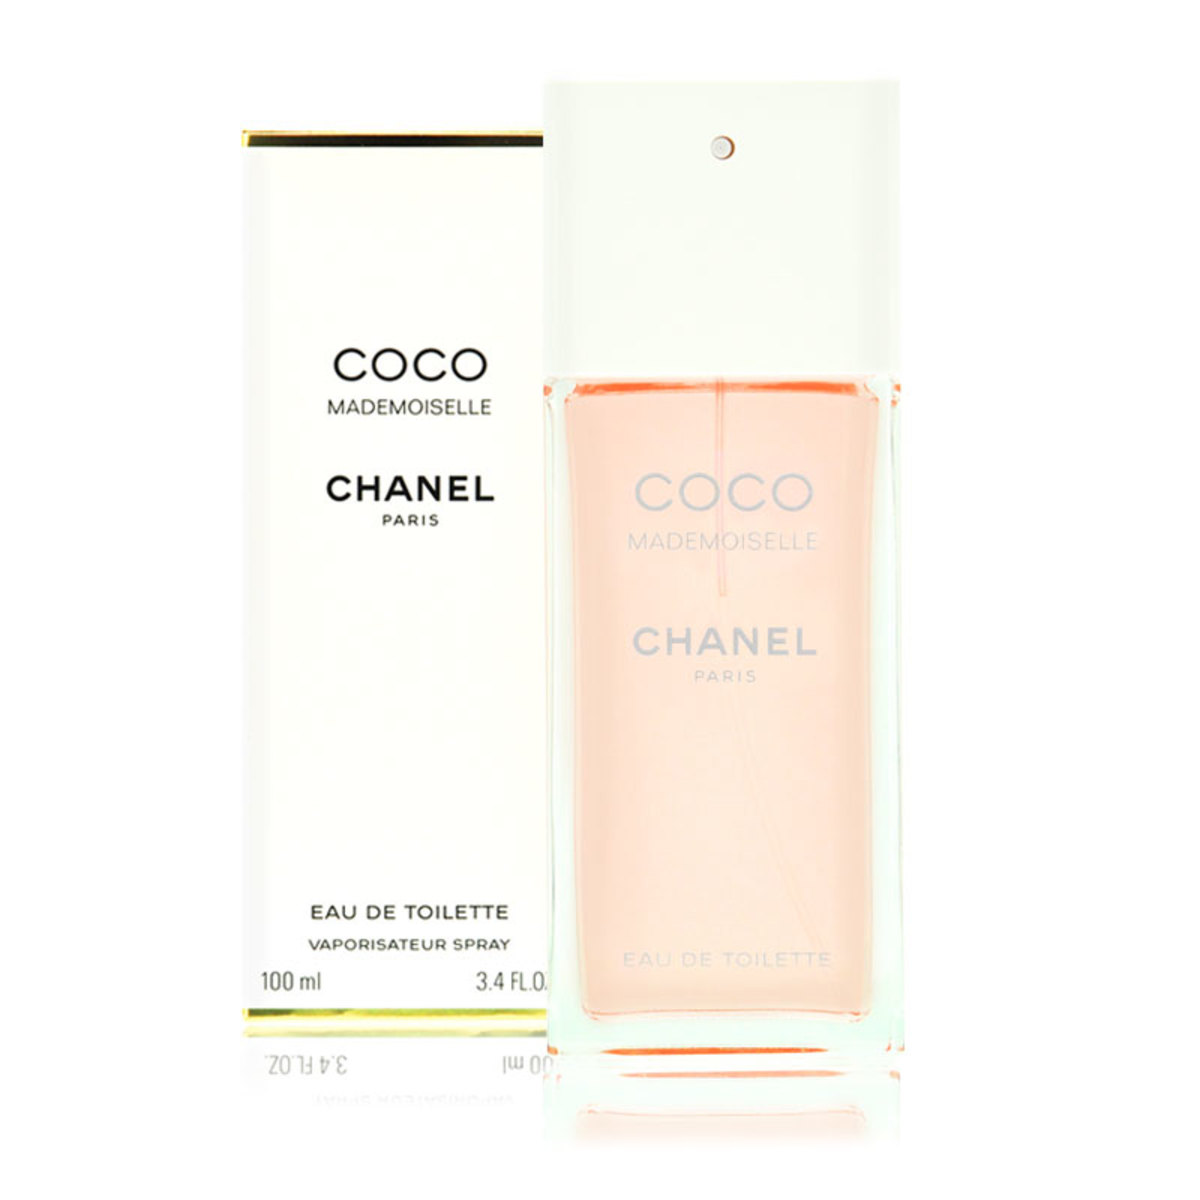 COCO Mademoiselle EDT Spray 100ml - [Parallel Import Product]